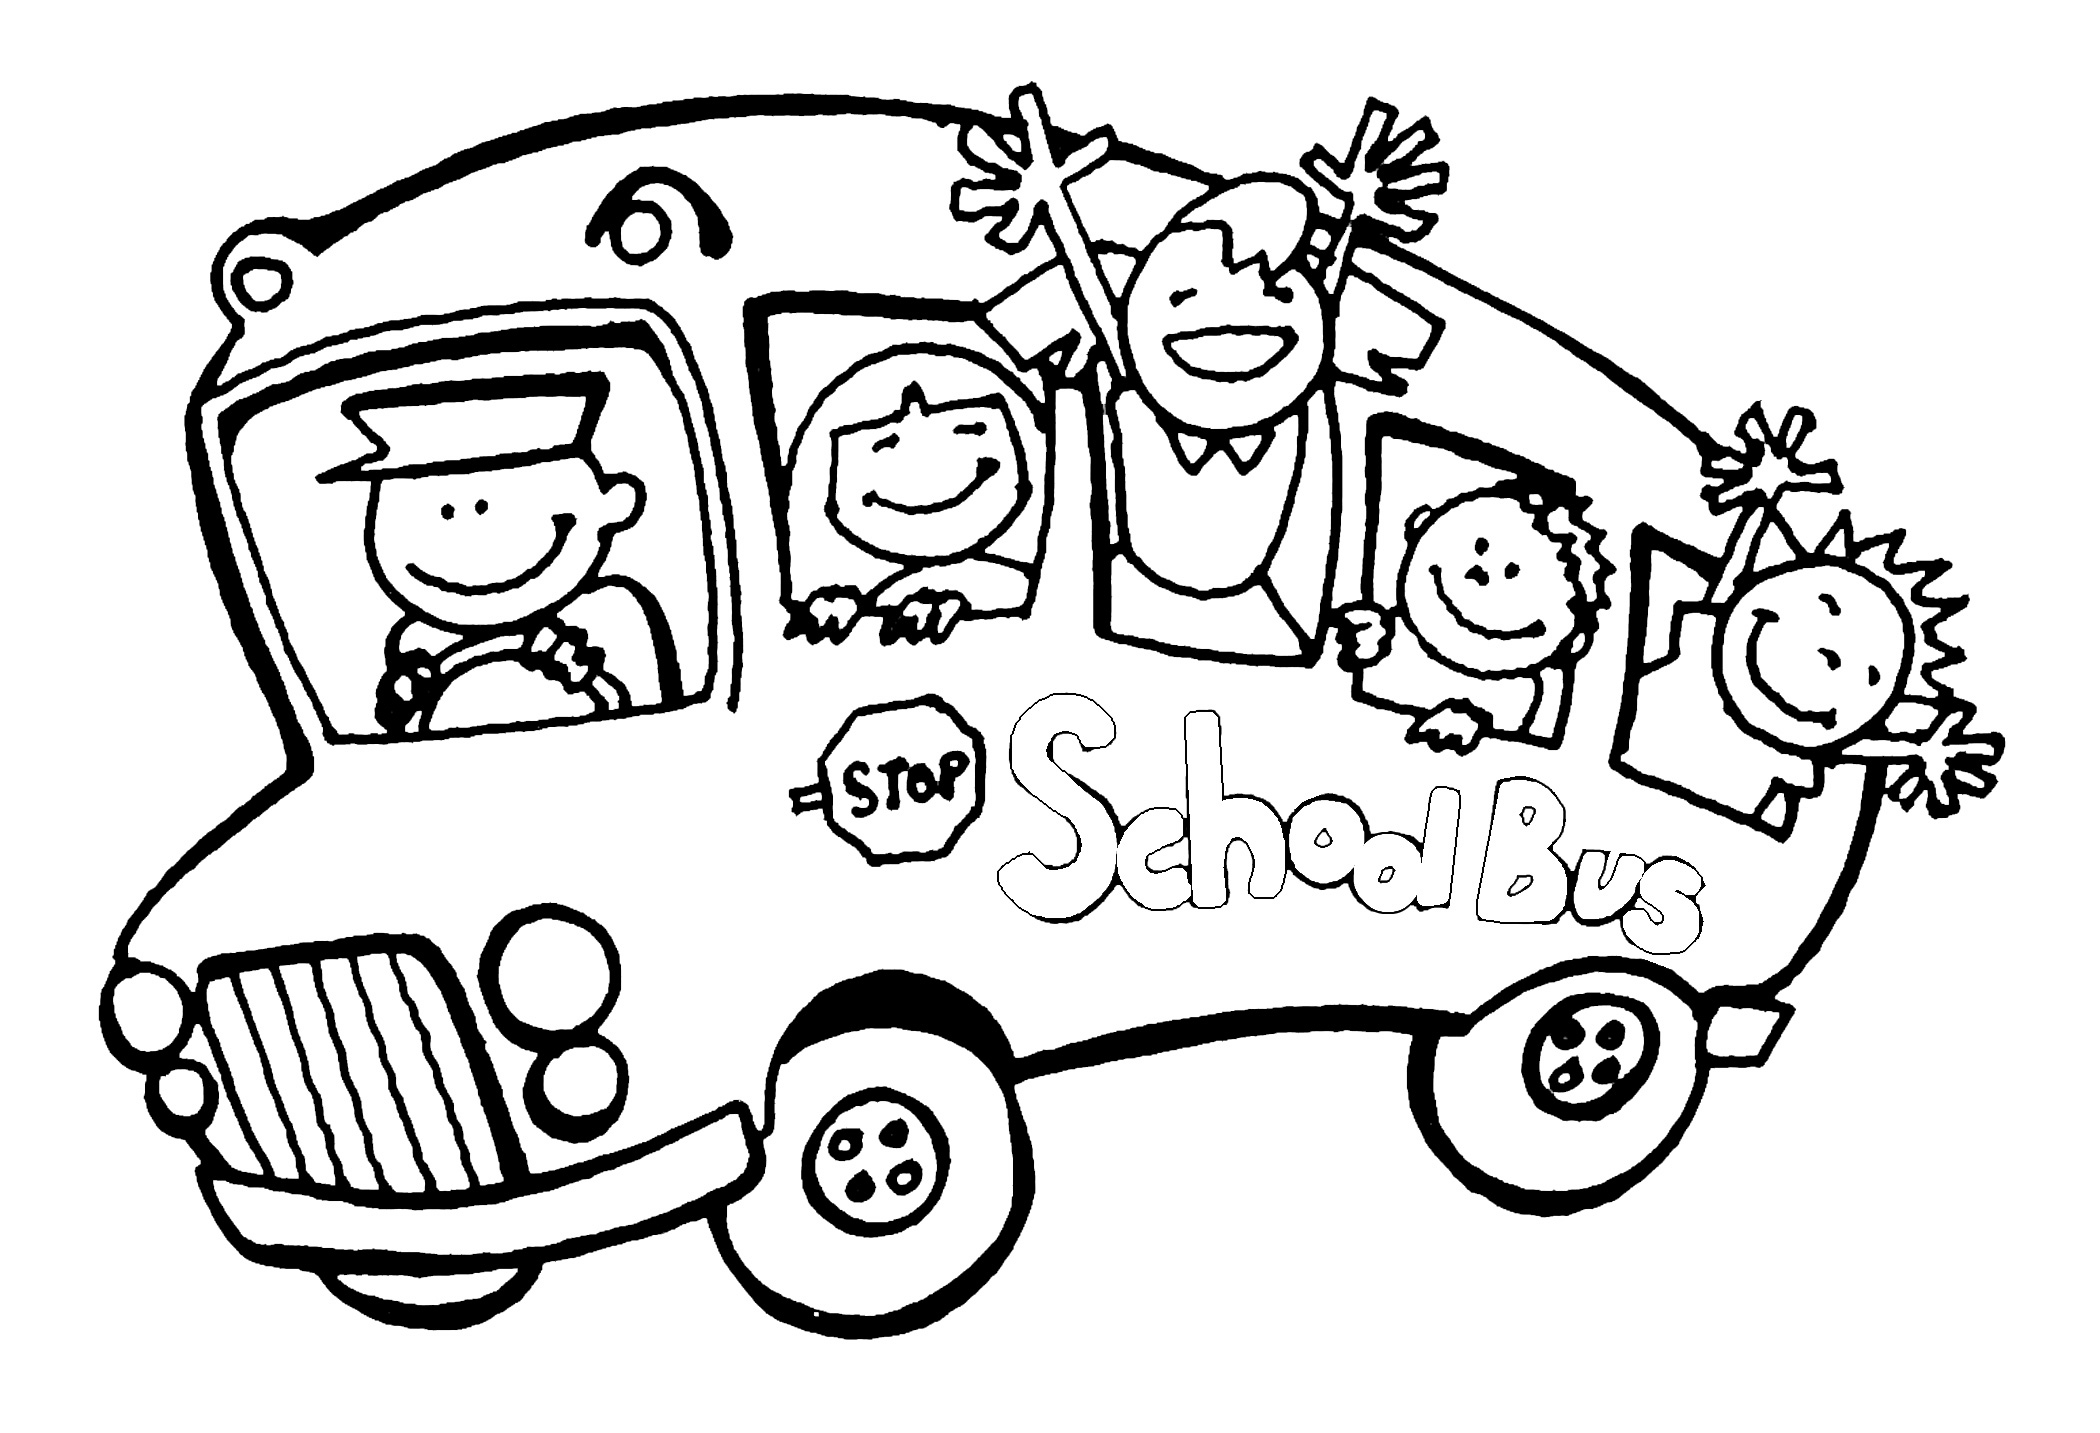 Kindergarten Coloring Sheets 03 Sheri Sarton Printable Of Free Preschool Coloring Pages Page for Kindergarten School Download